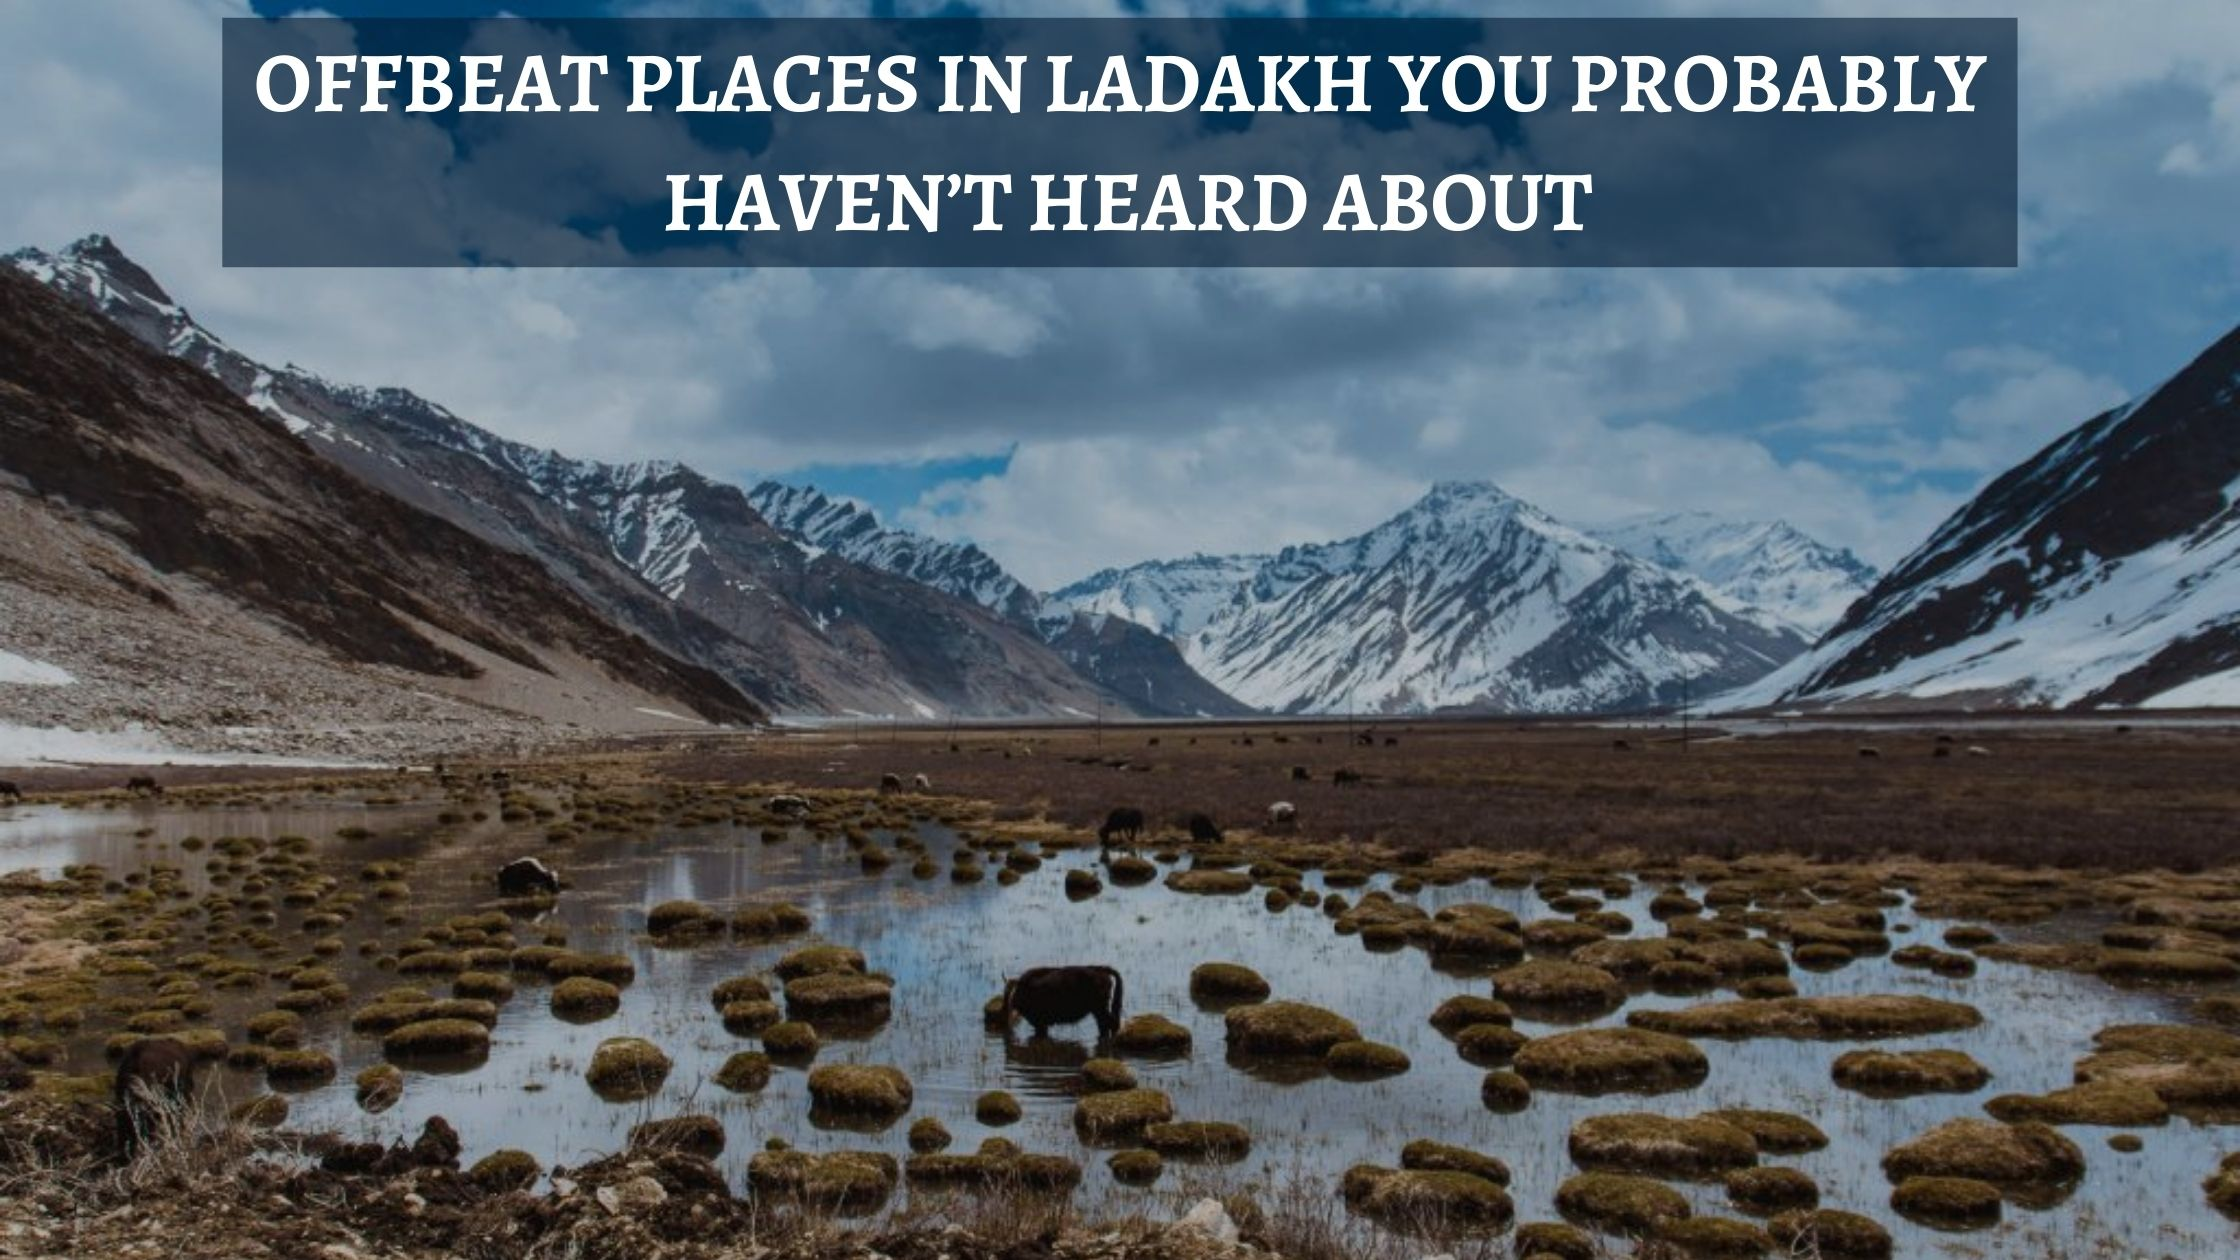 Offbeat Places In Ladakh You Probably Haven't Heard About